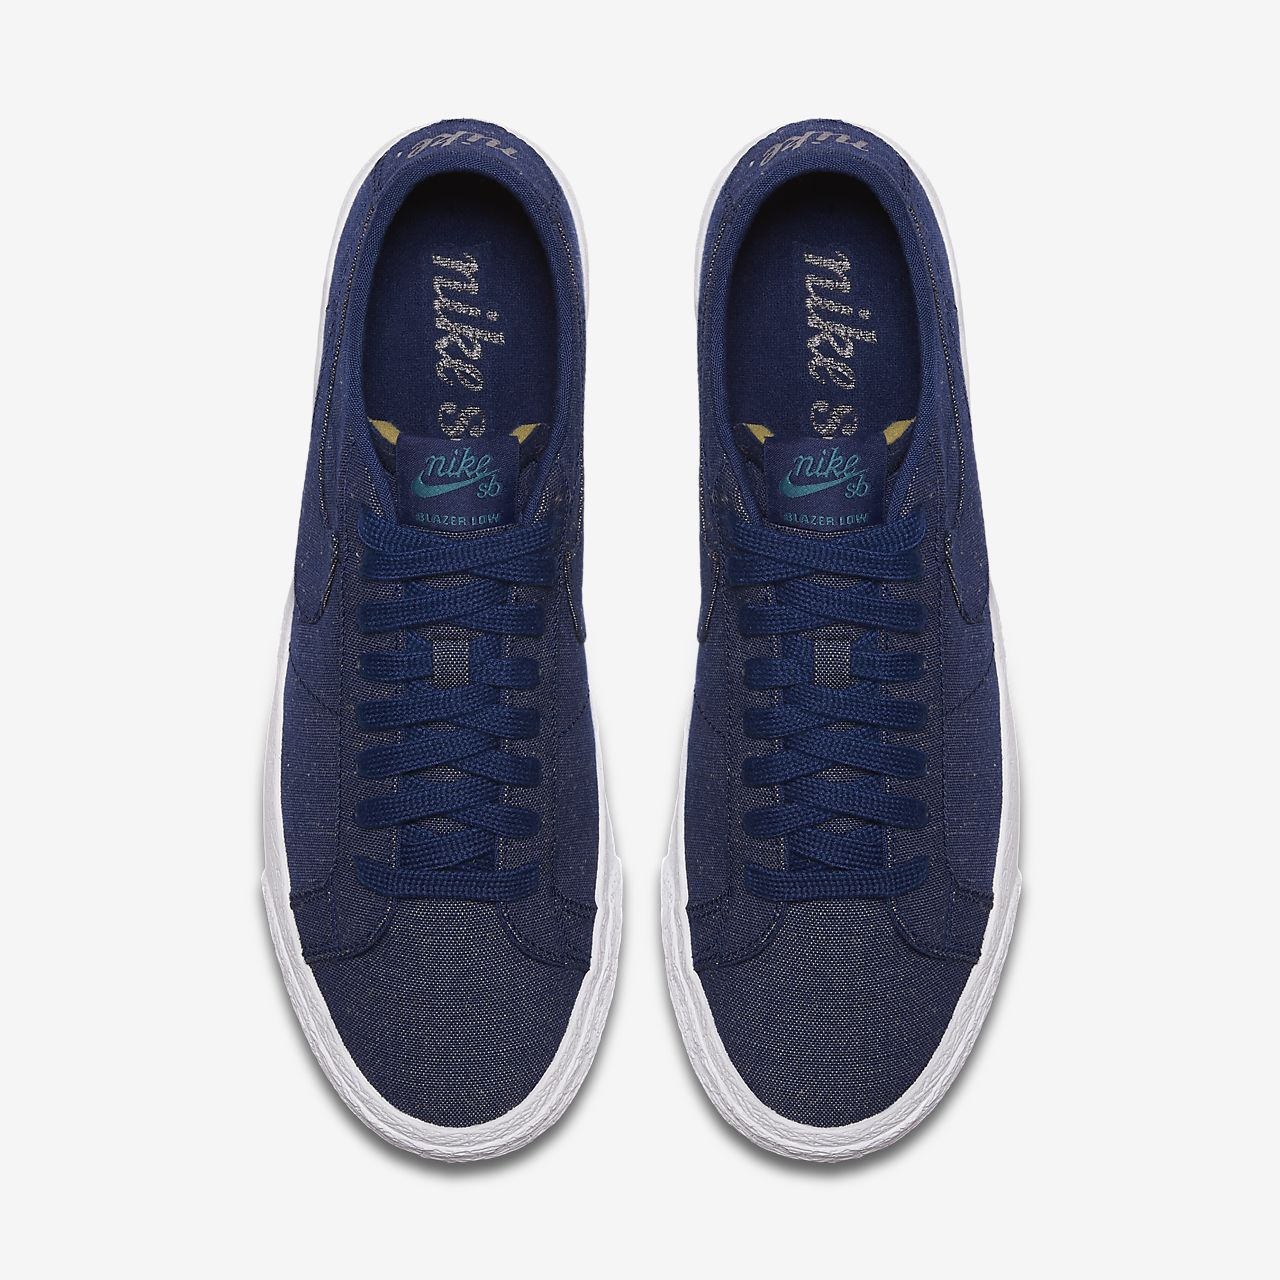 new concept e36f1 e44ca ... Nike SB Zoom Blazer Low Canvas Deconstructed skatesko til herre